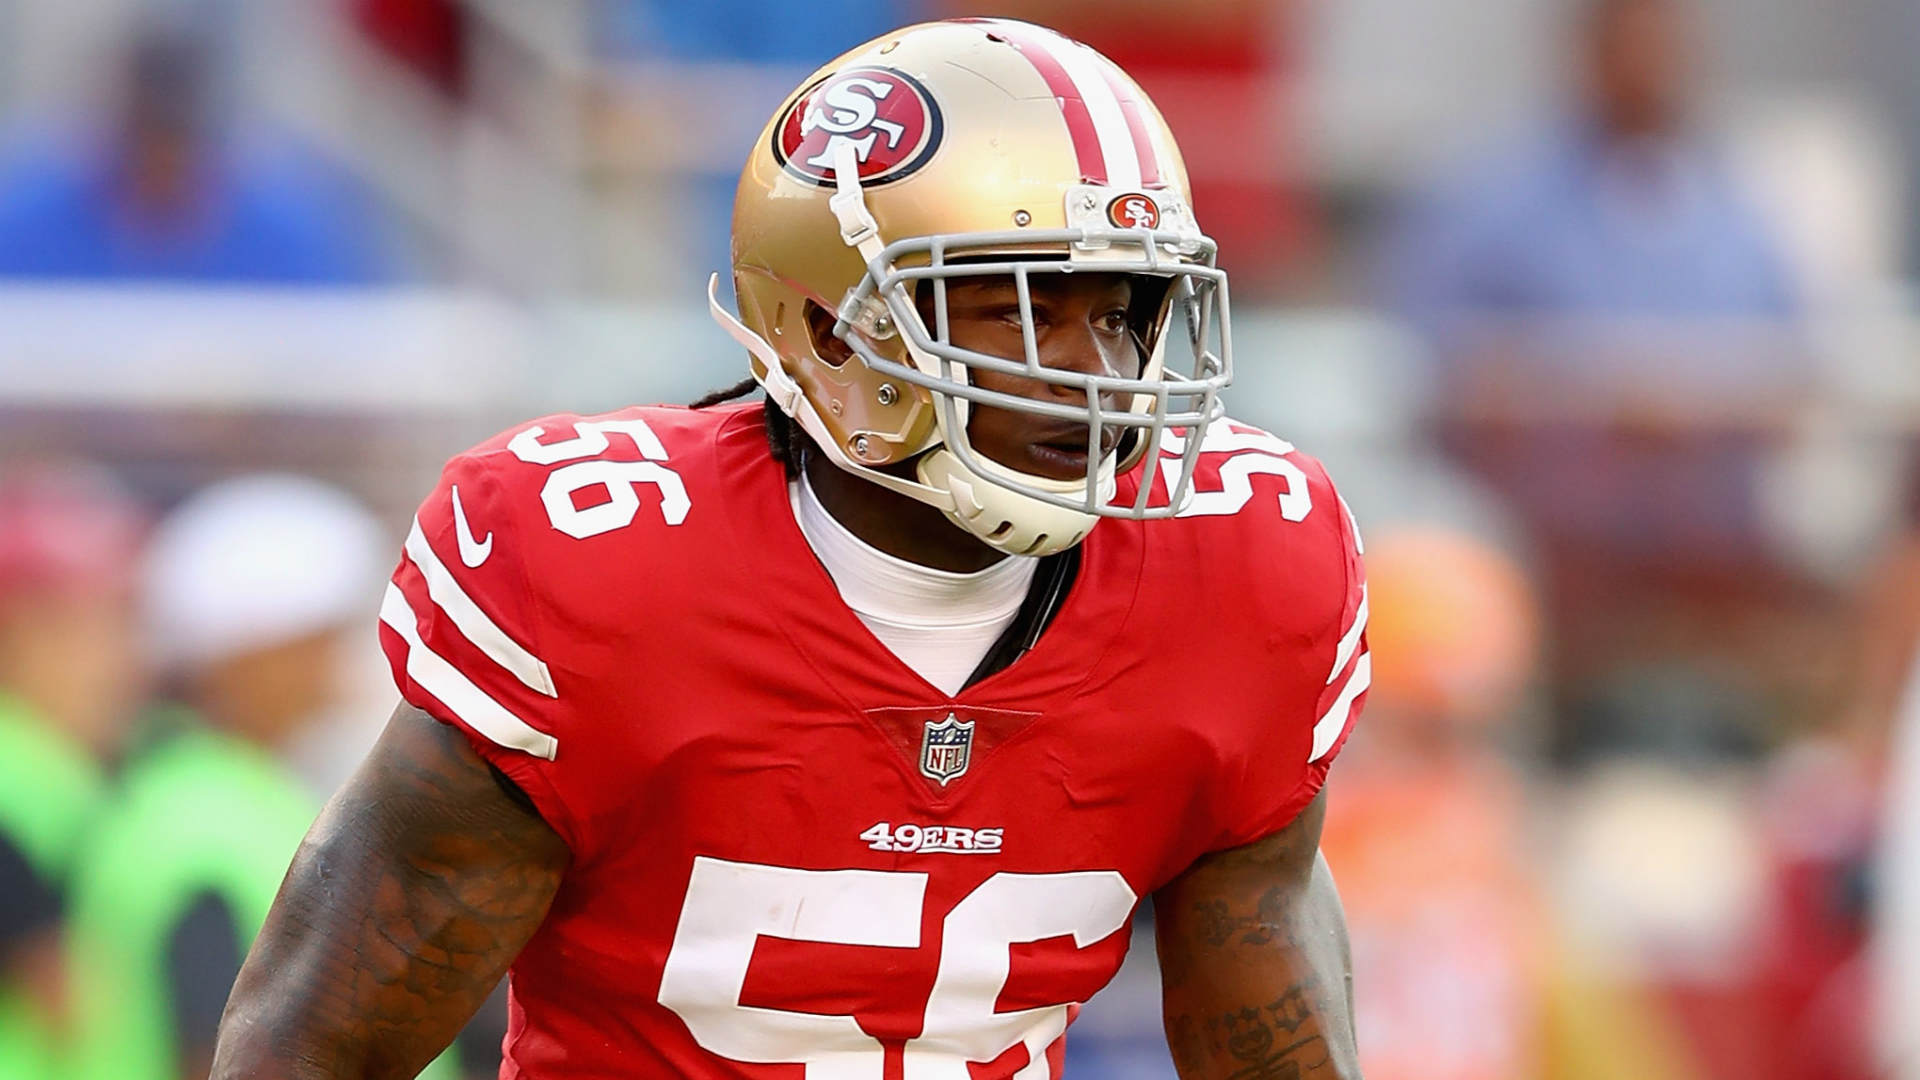 Reuben Foster, 49ers linebacker, arrested on marijuana charge